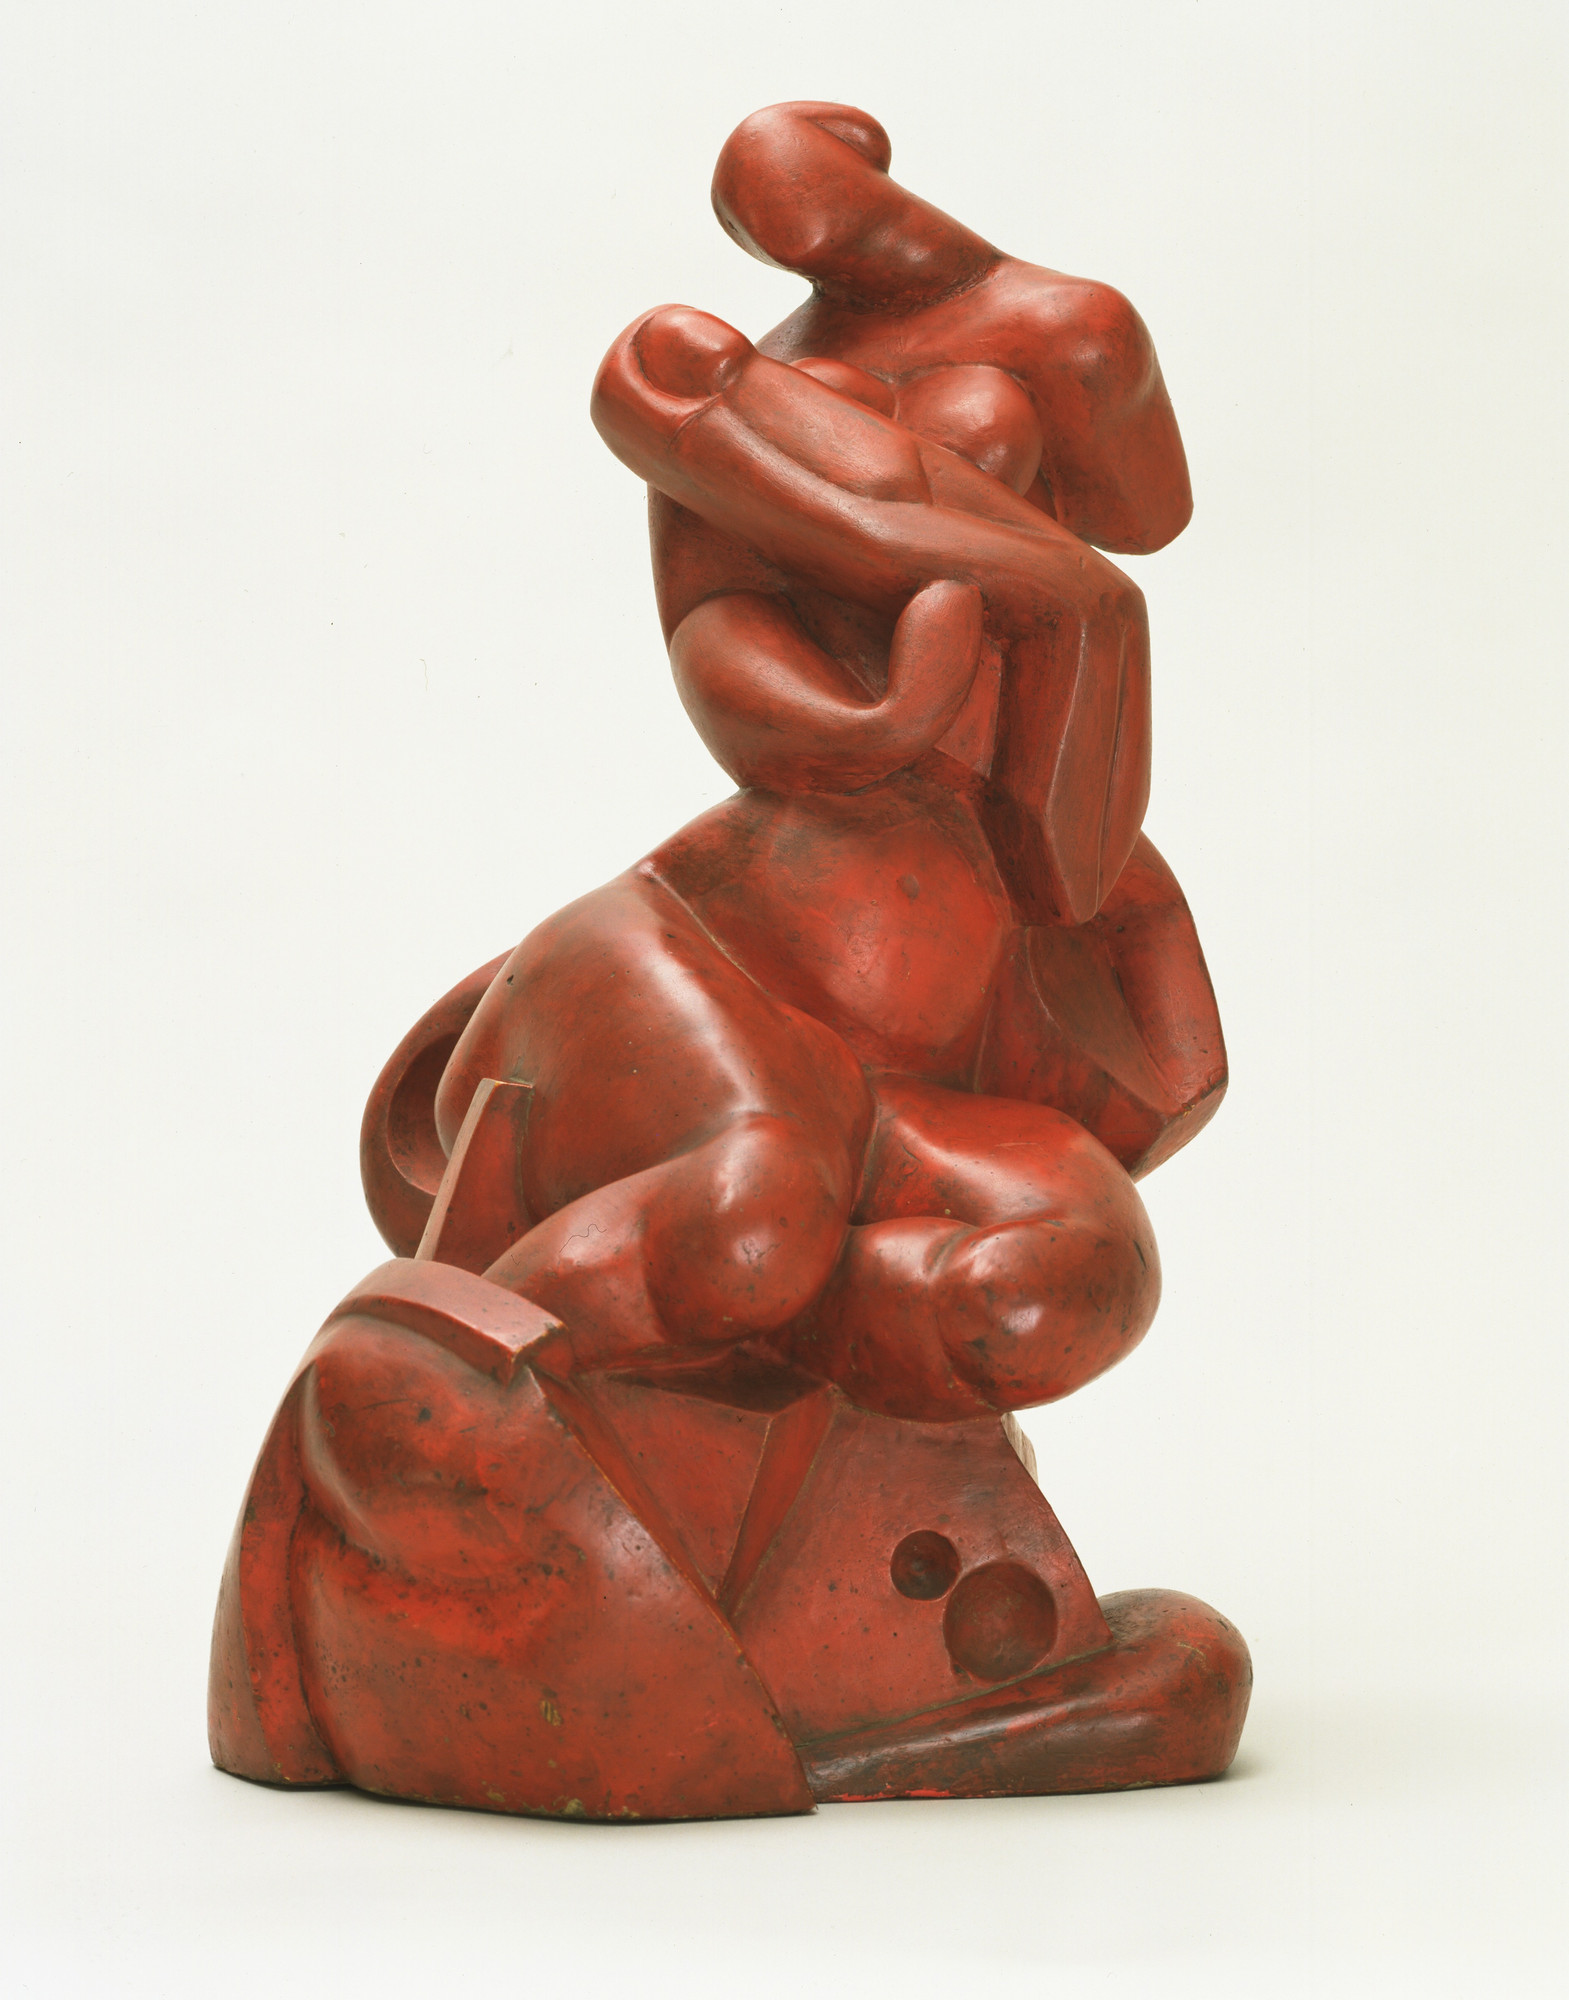 Aleksandr Archipenko. Madonna of the Rocks. 1912